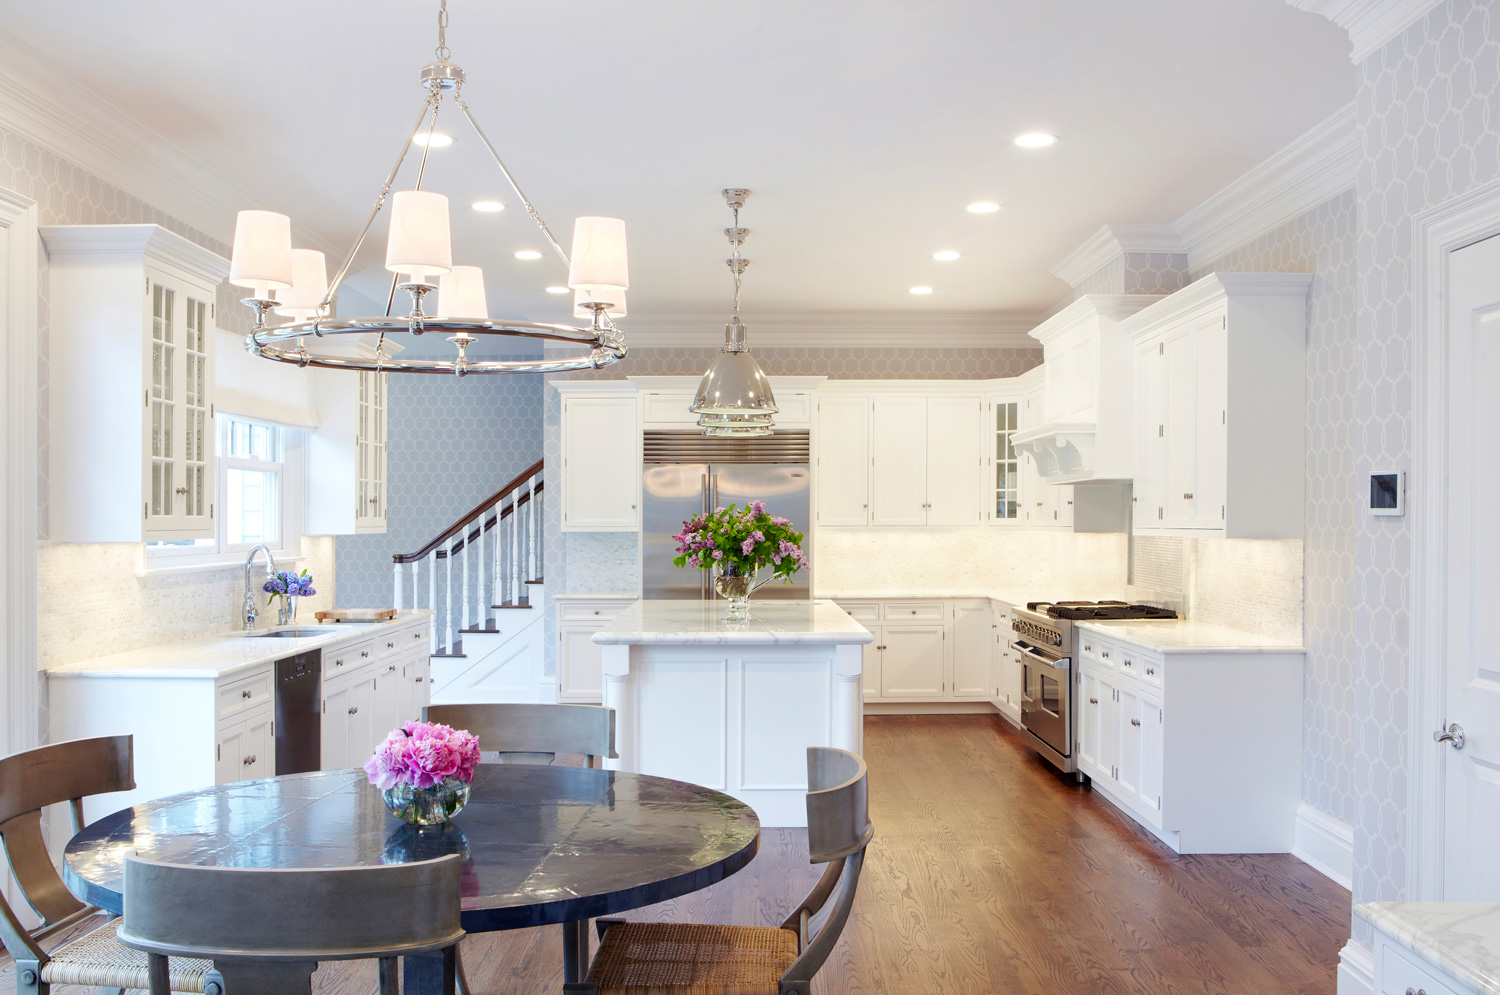 nook lighting. How To Coordinate Lighting In Your Kitchen - Island And Breakfast Nook Combinations E